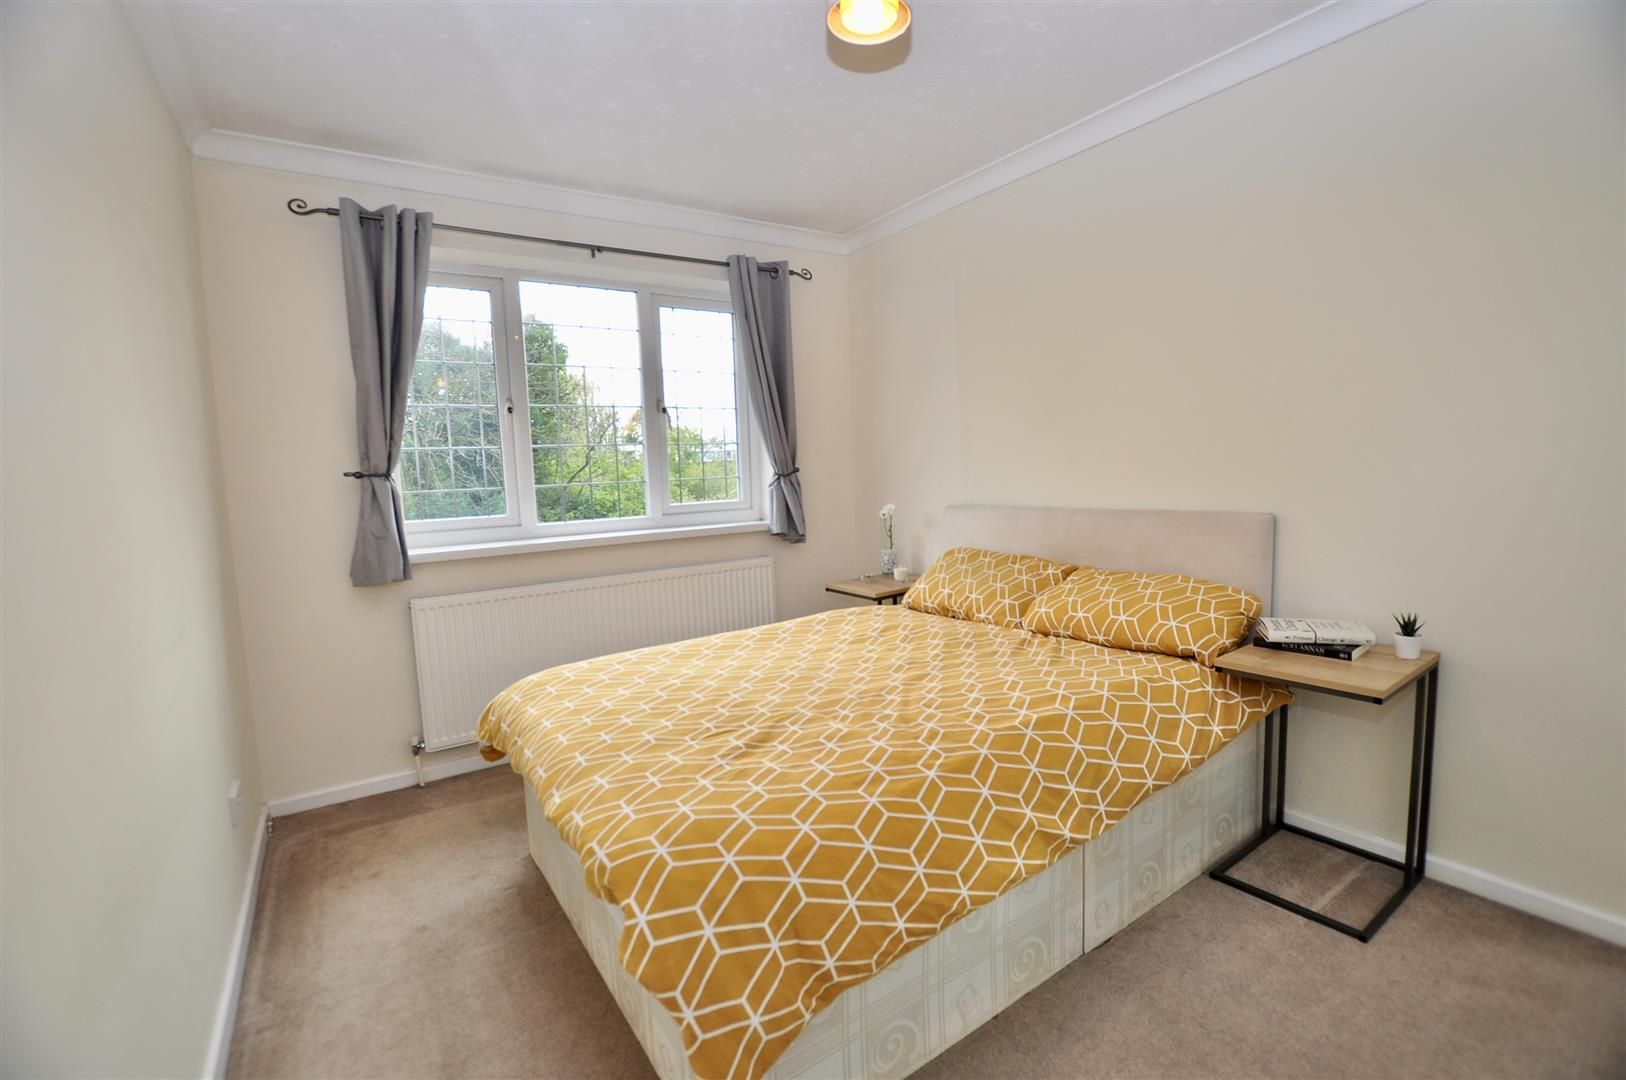 4 bed house for sale in Hagley 23